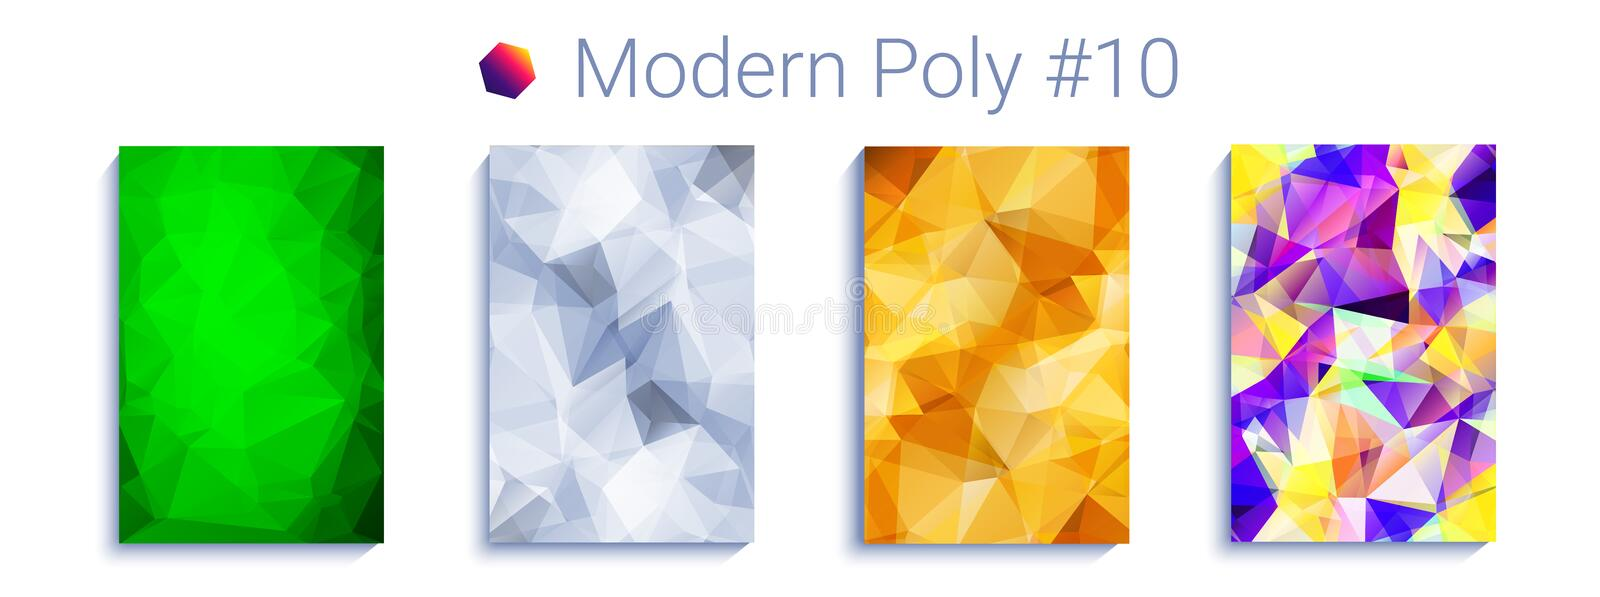 Koele driehoekige gradiëntachtergrond Modern abstract geometrisch patroon Helder colorfullbehang Vector vector illustratie